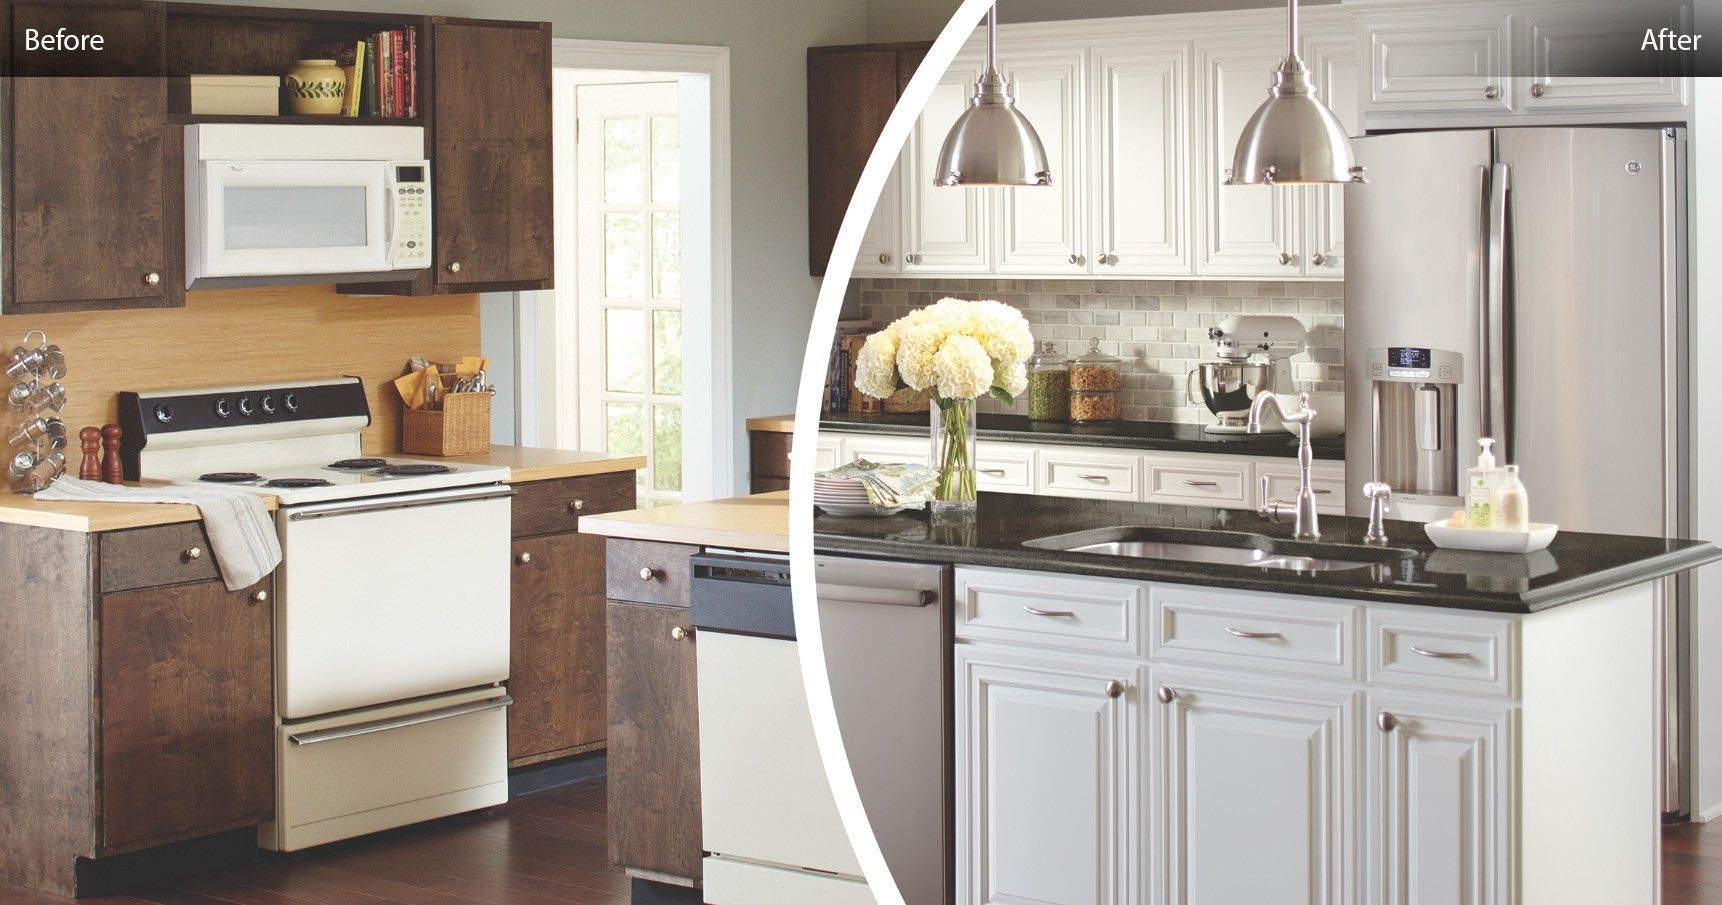 New Home Depot Kitchen Cabinets Refacing The Most Awesome Along With Gorgeous Home Depot Kitchen Cabinets Refacing Intended For Really Encourage Your Own Hom